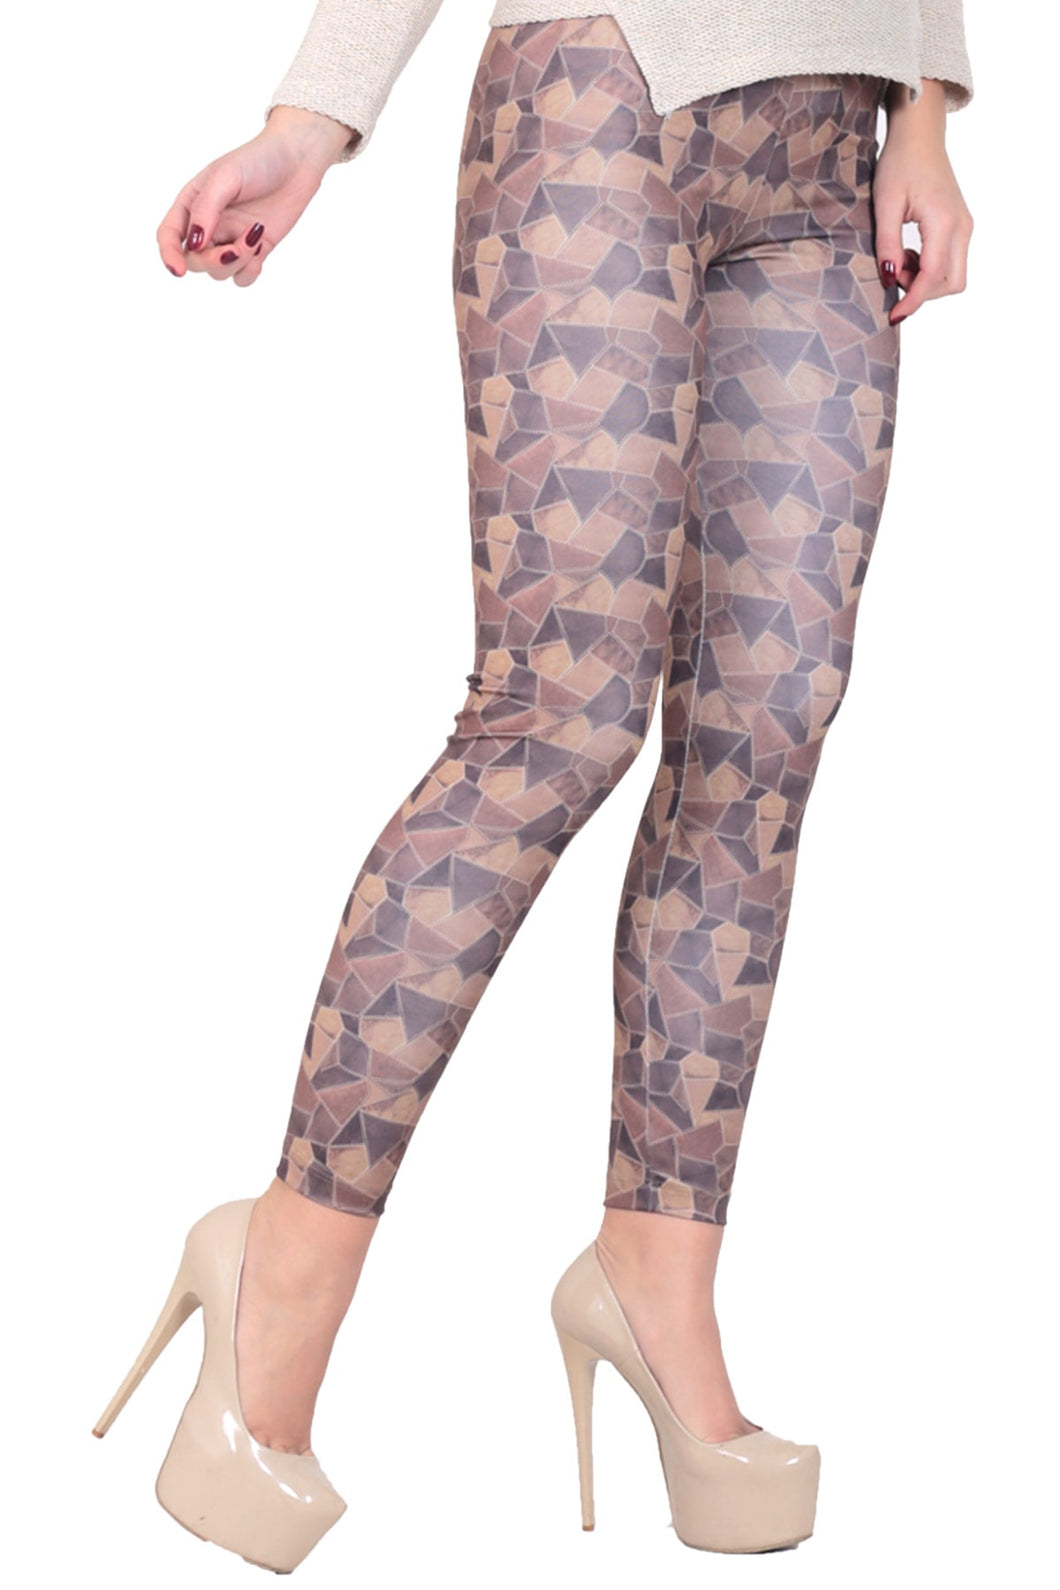 Women's Printed Mink Tights